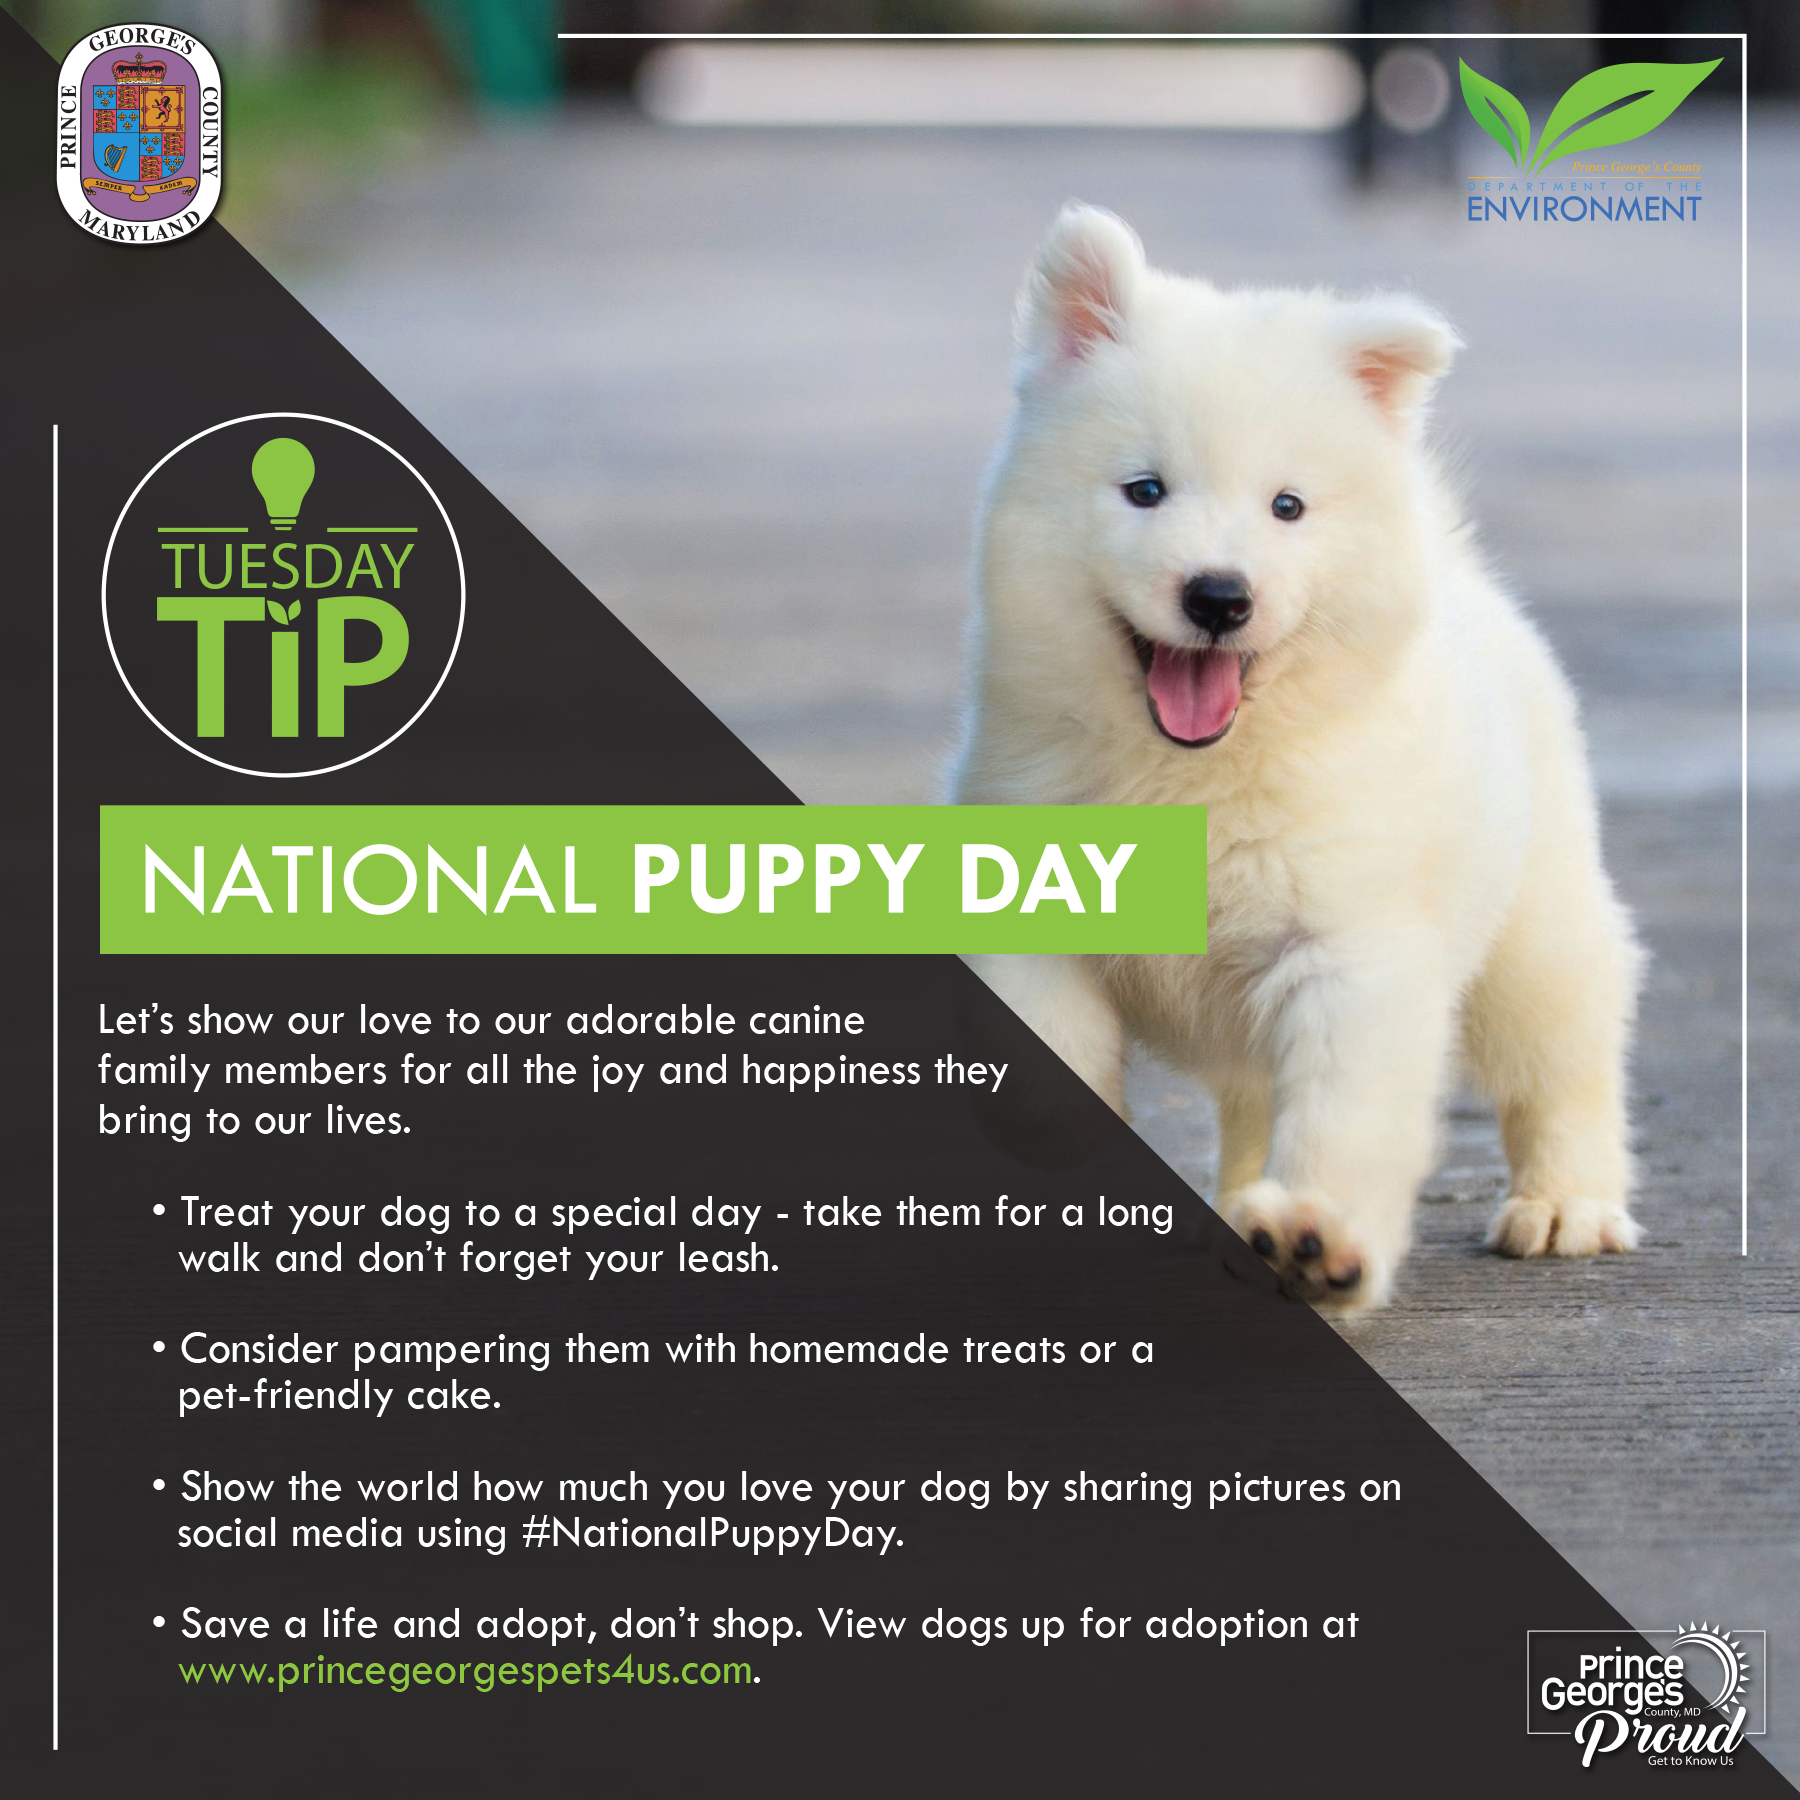 Tues Tip 3.23.21 Puppy day eng